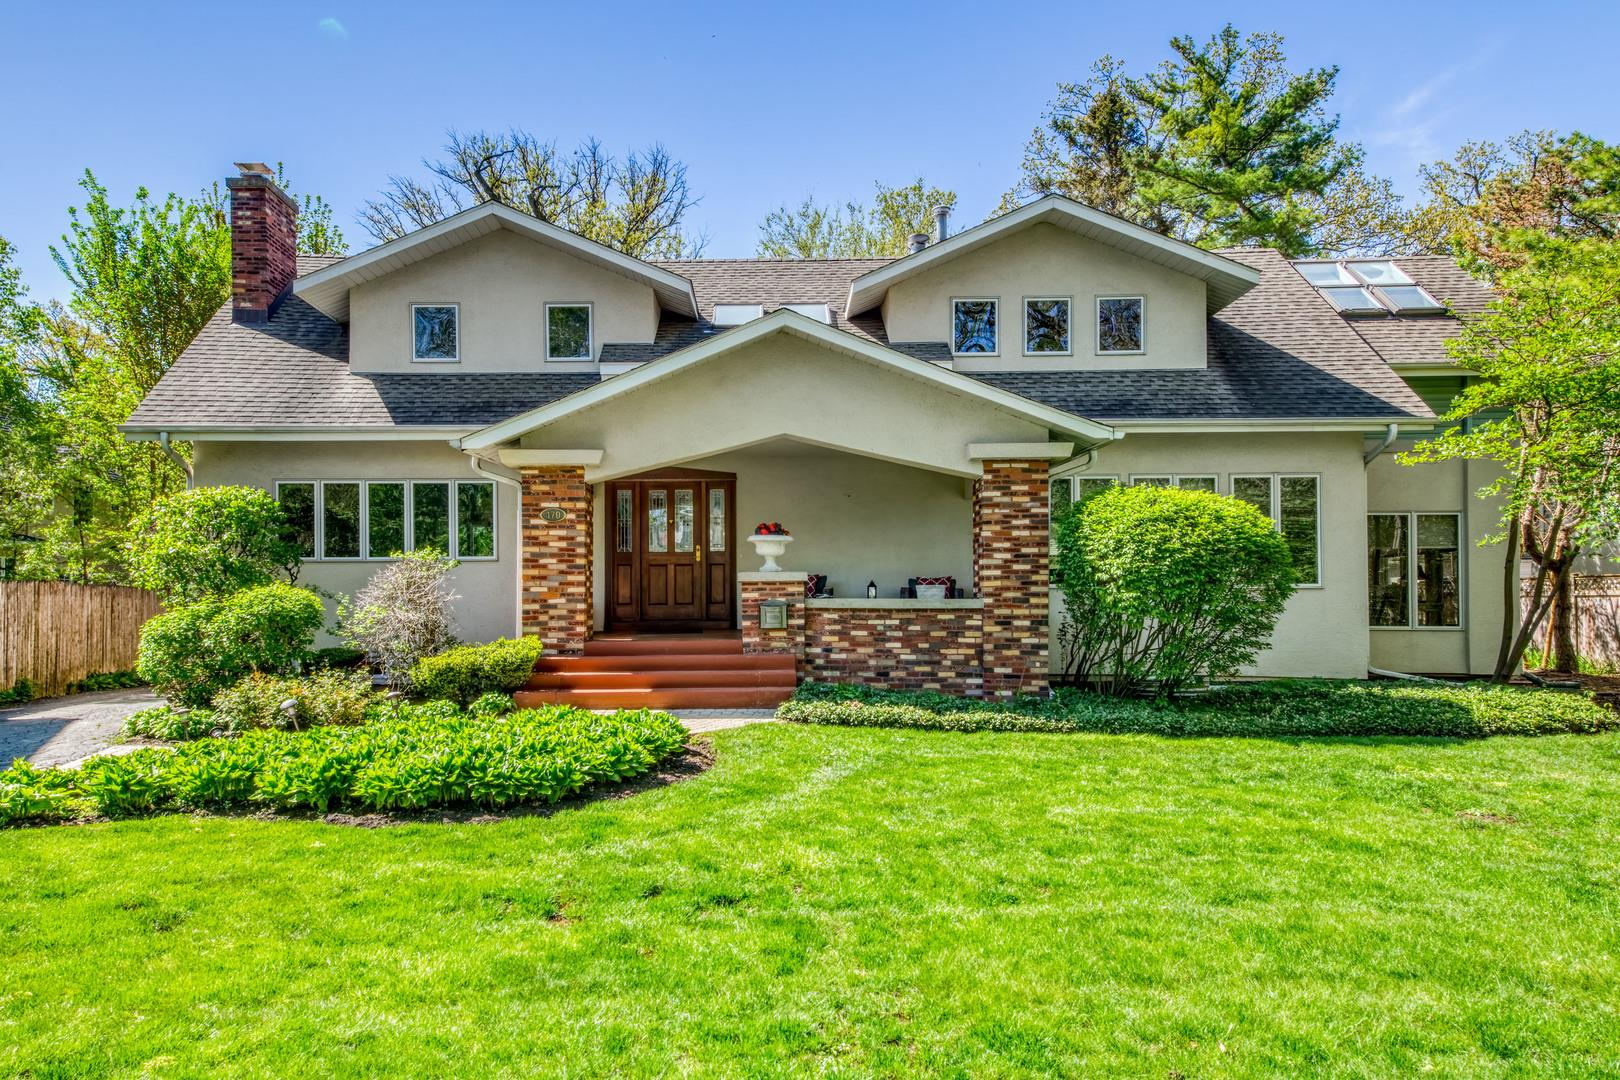 470 Hawthorn Lane, Winnetka, IL 60093 - #: 11084569